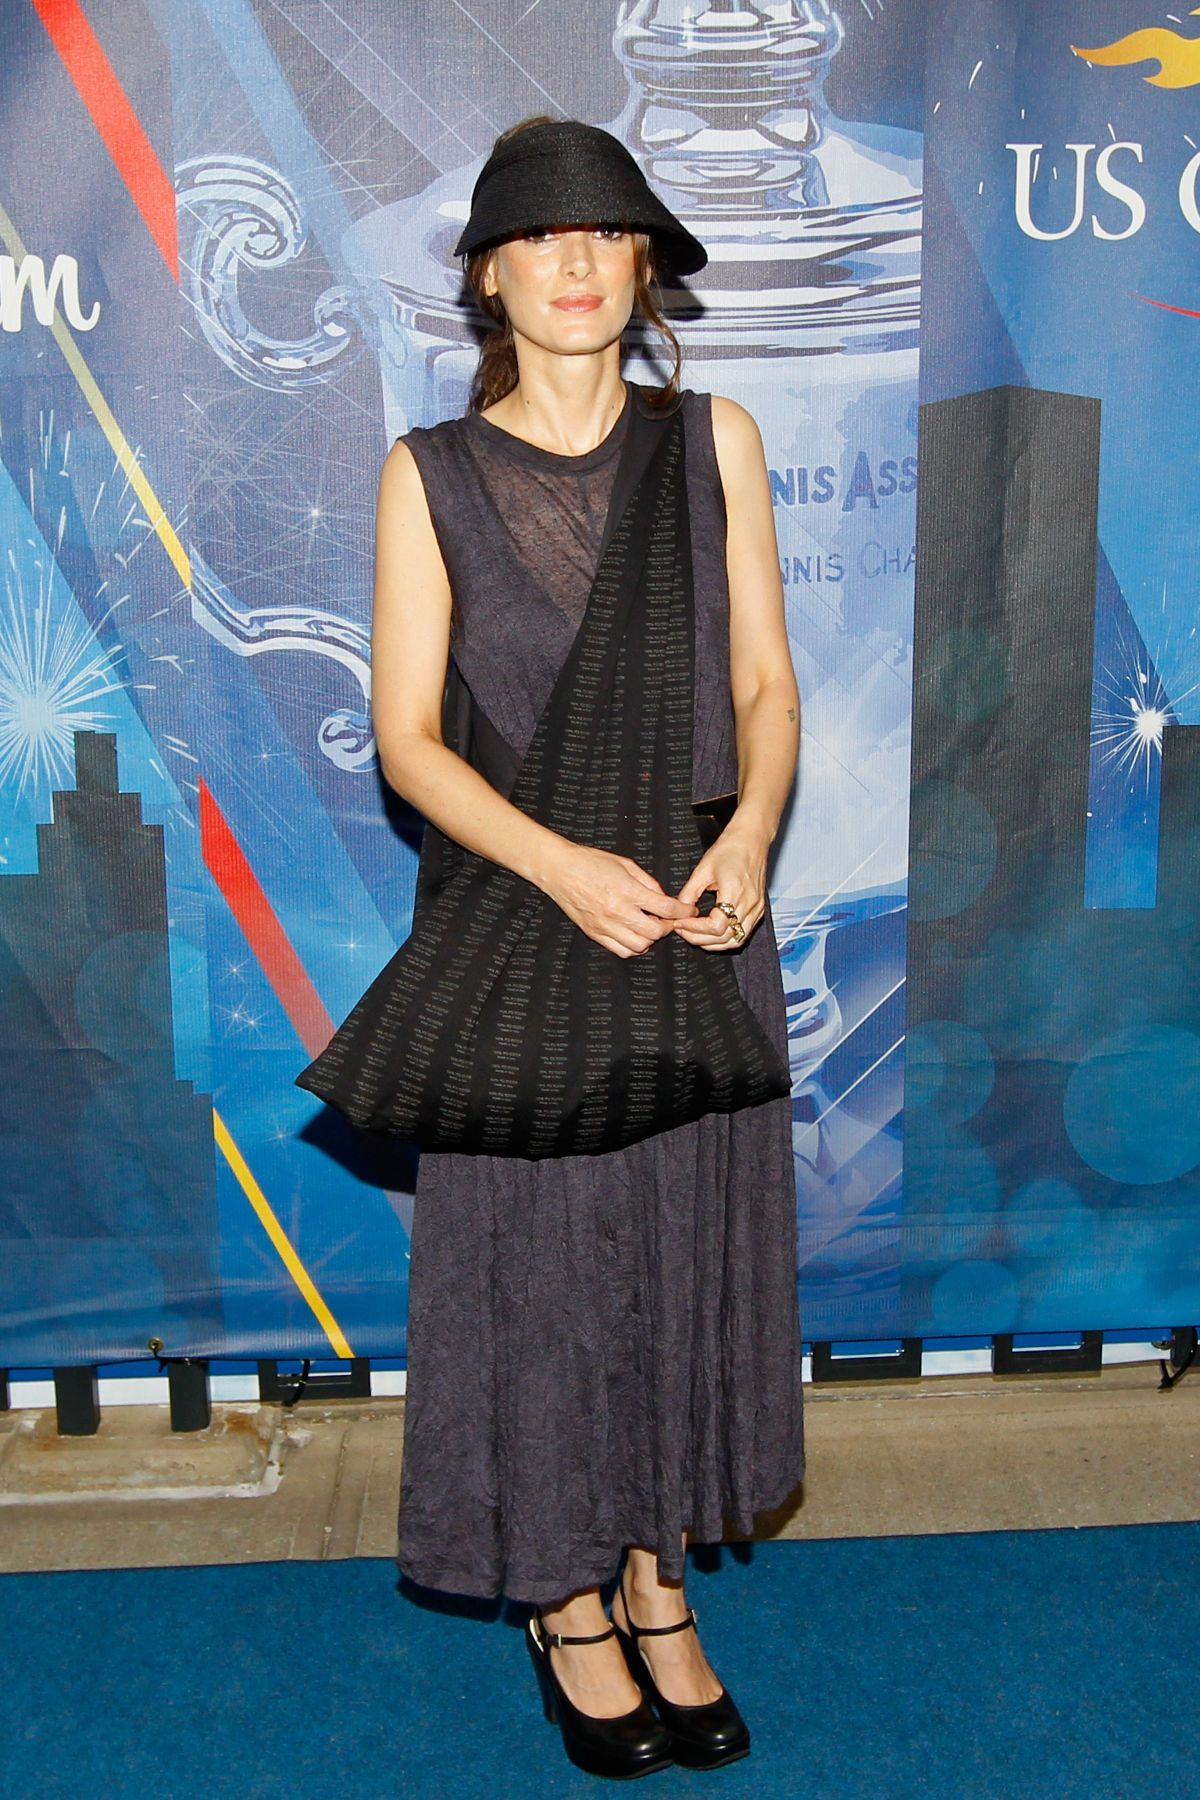 Winona Ryder At 2013 US Open In New York